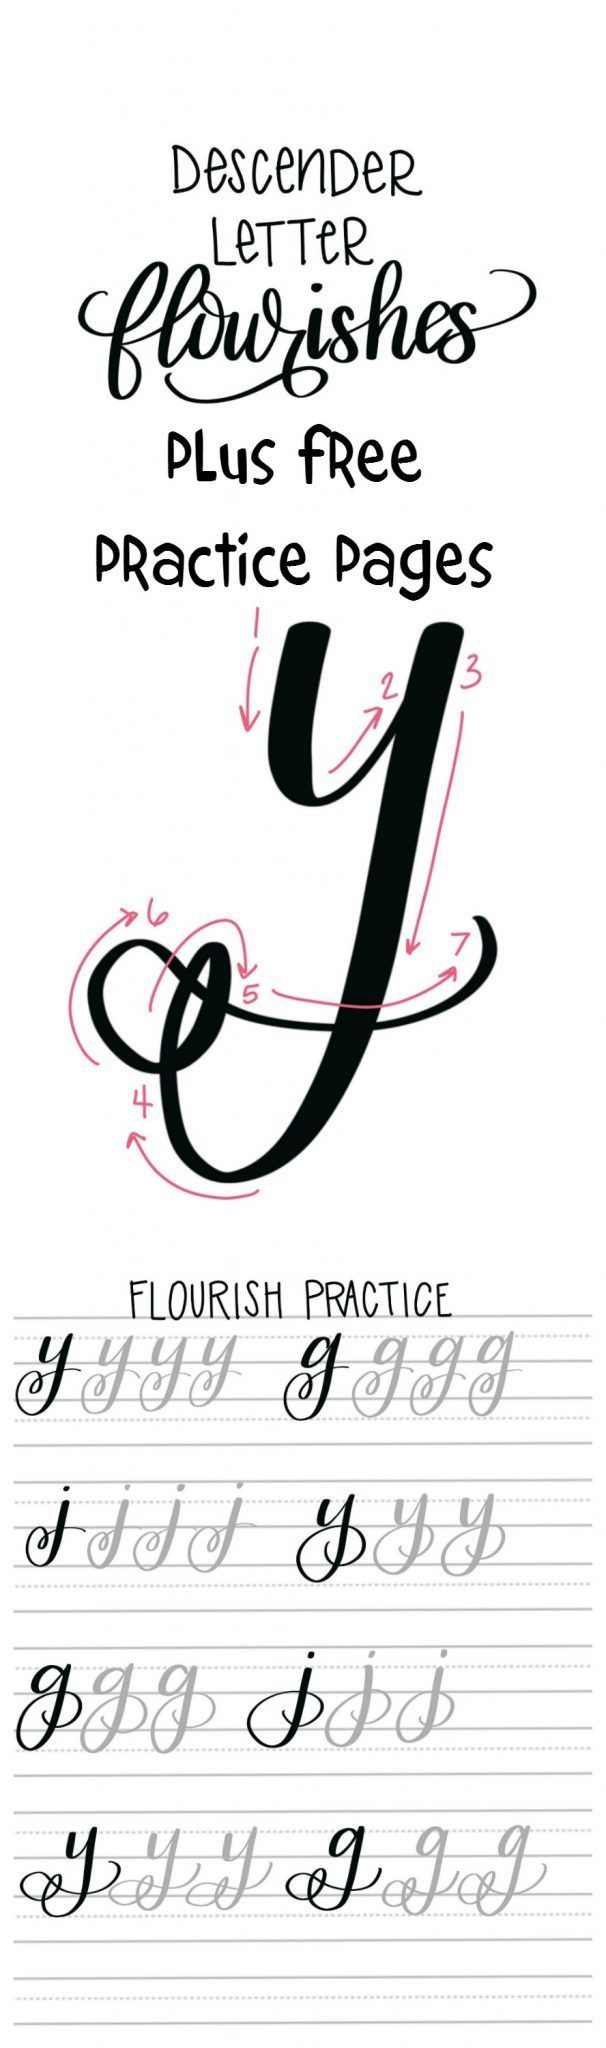 Hand Lettering Descender Letter Flourishes Free Practice Sheets Amy Latta Creations Lettering Lettering Tutorial Hand Lettering [ 2048 x 606 Pixel ]